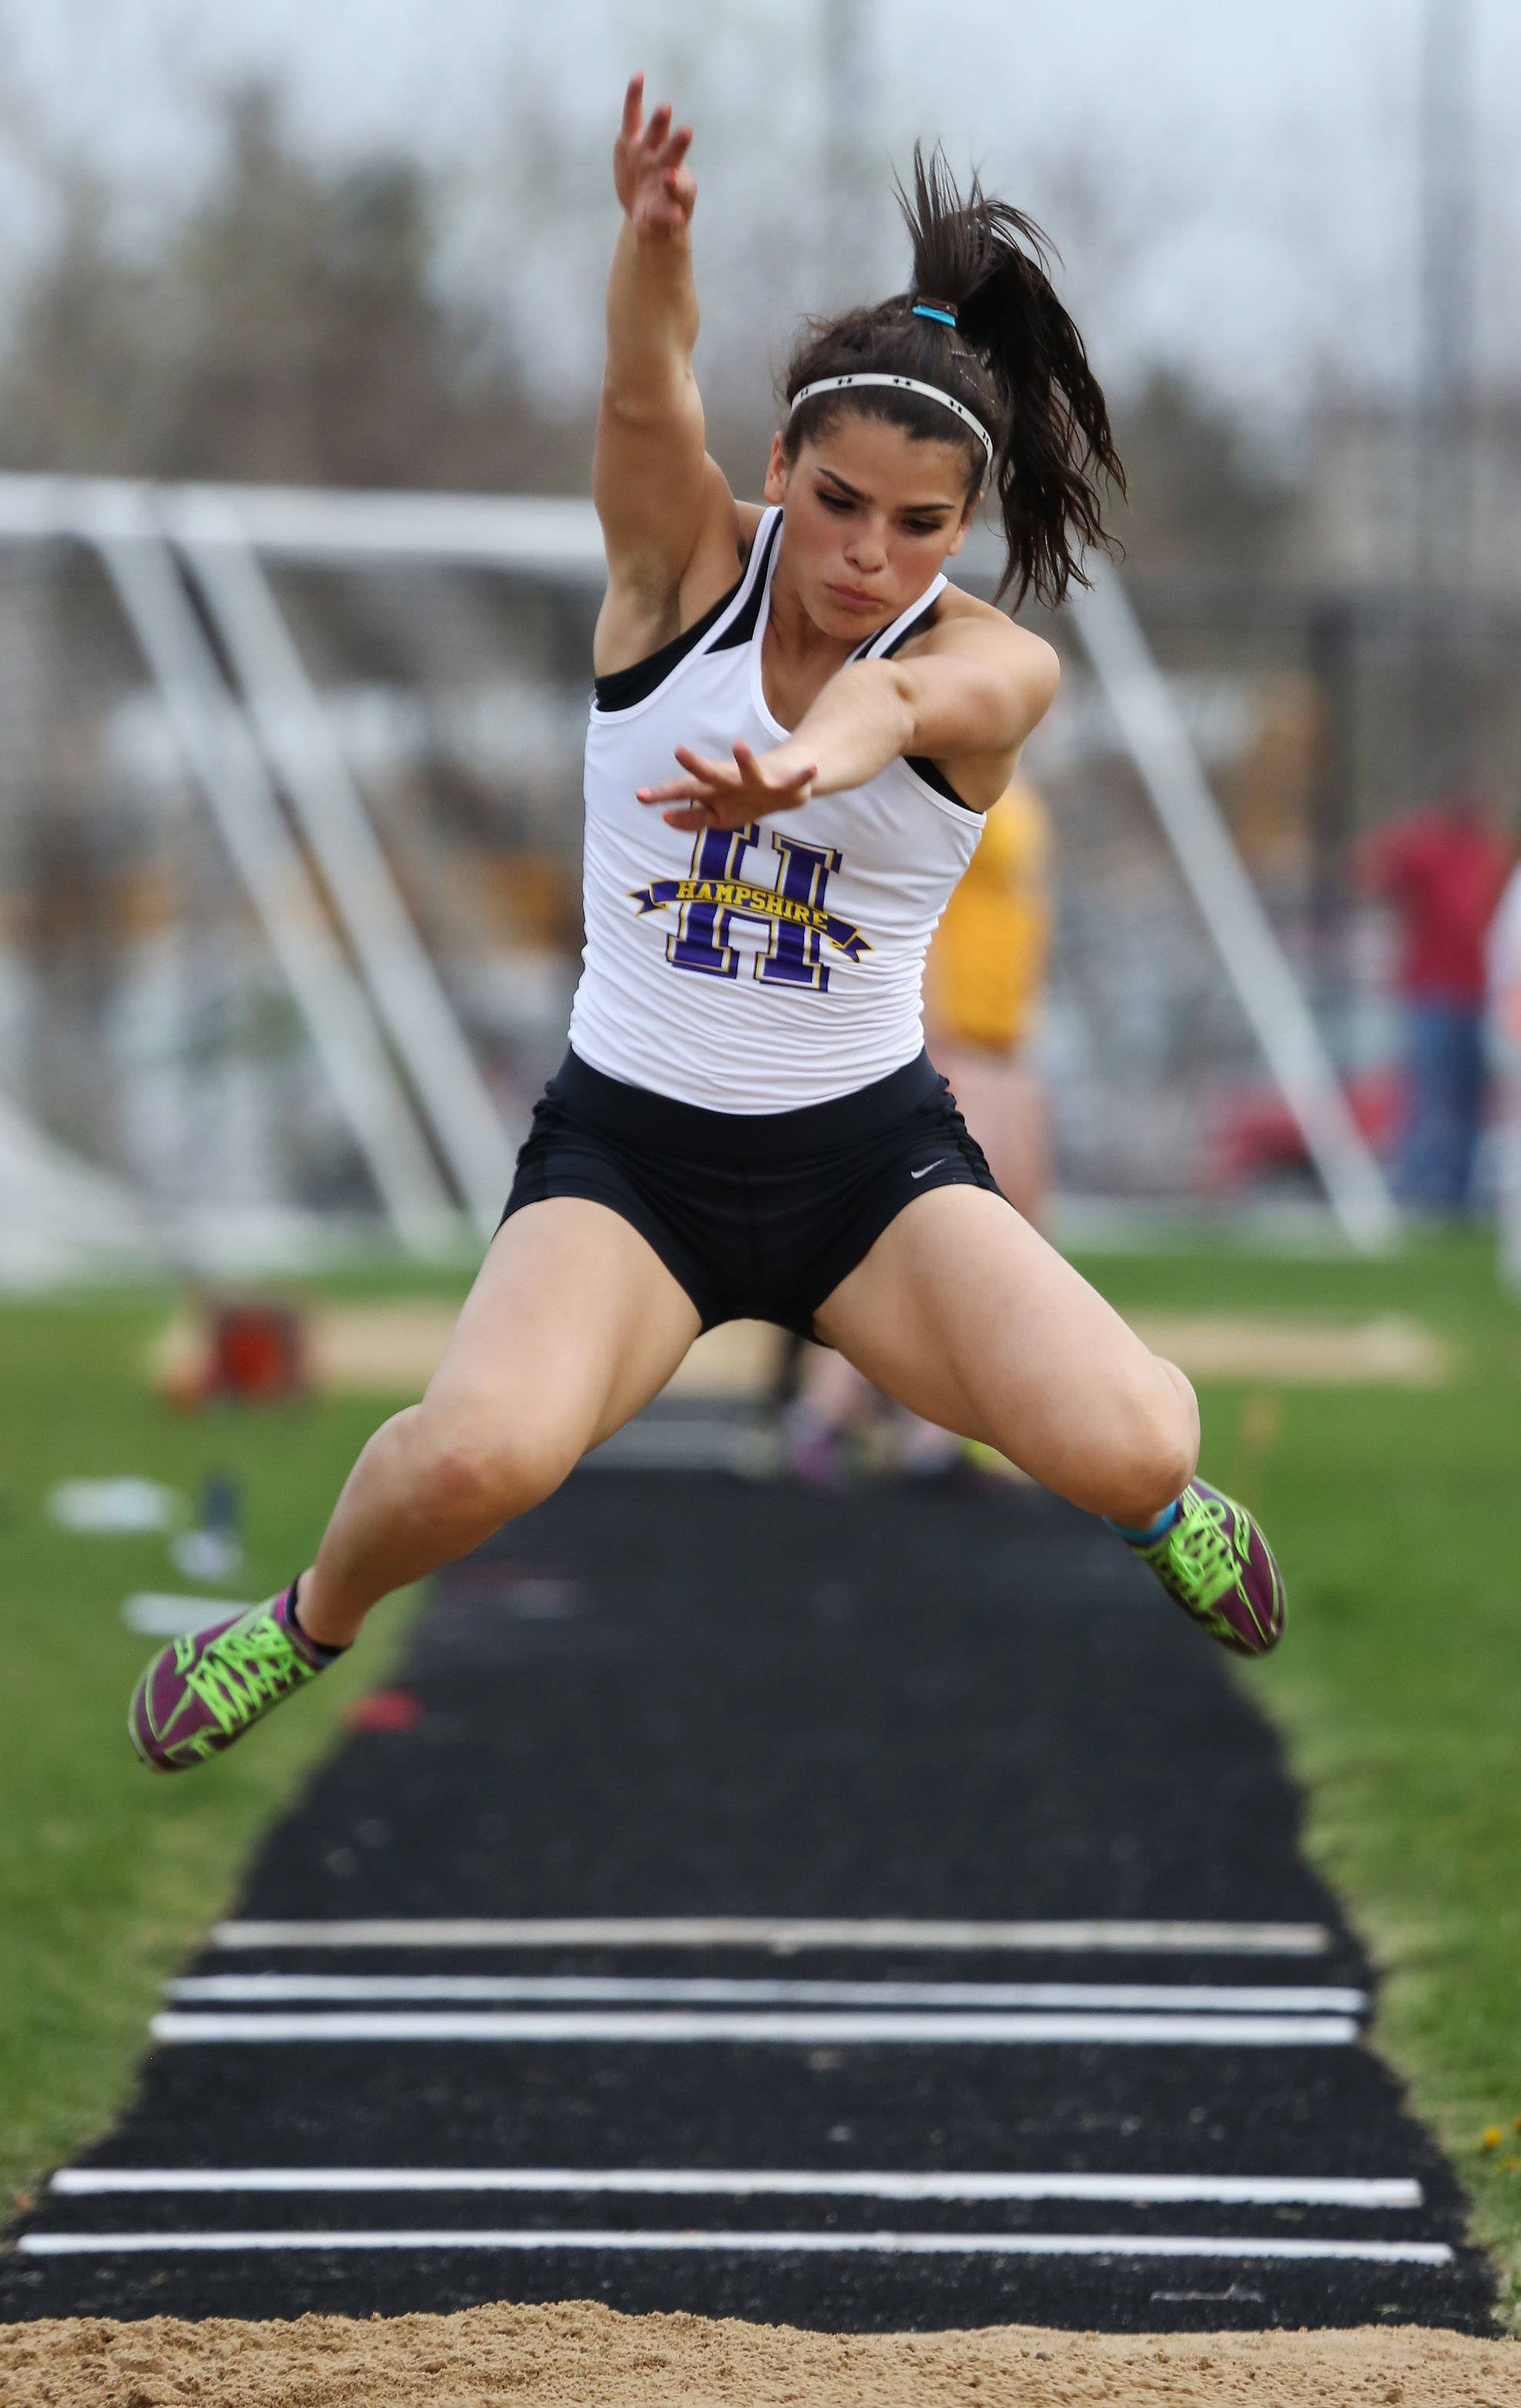 Elizabeth Pagan of Hampshire competes in the long jump during the Fox Valley Conference girls track meet.